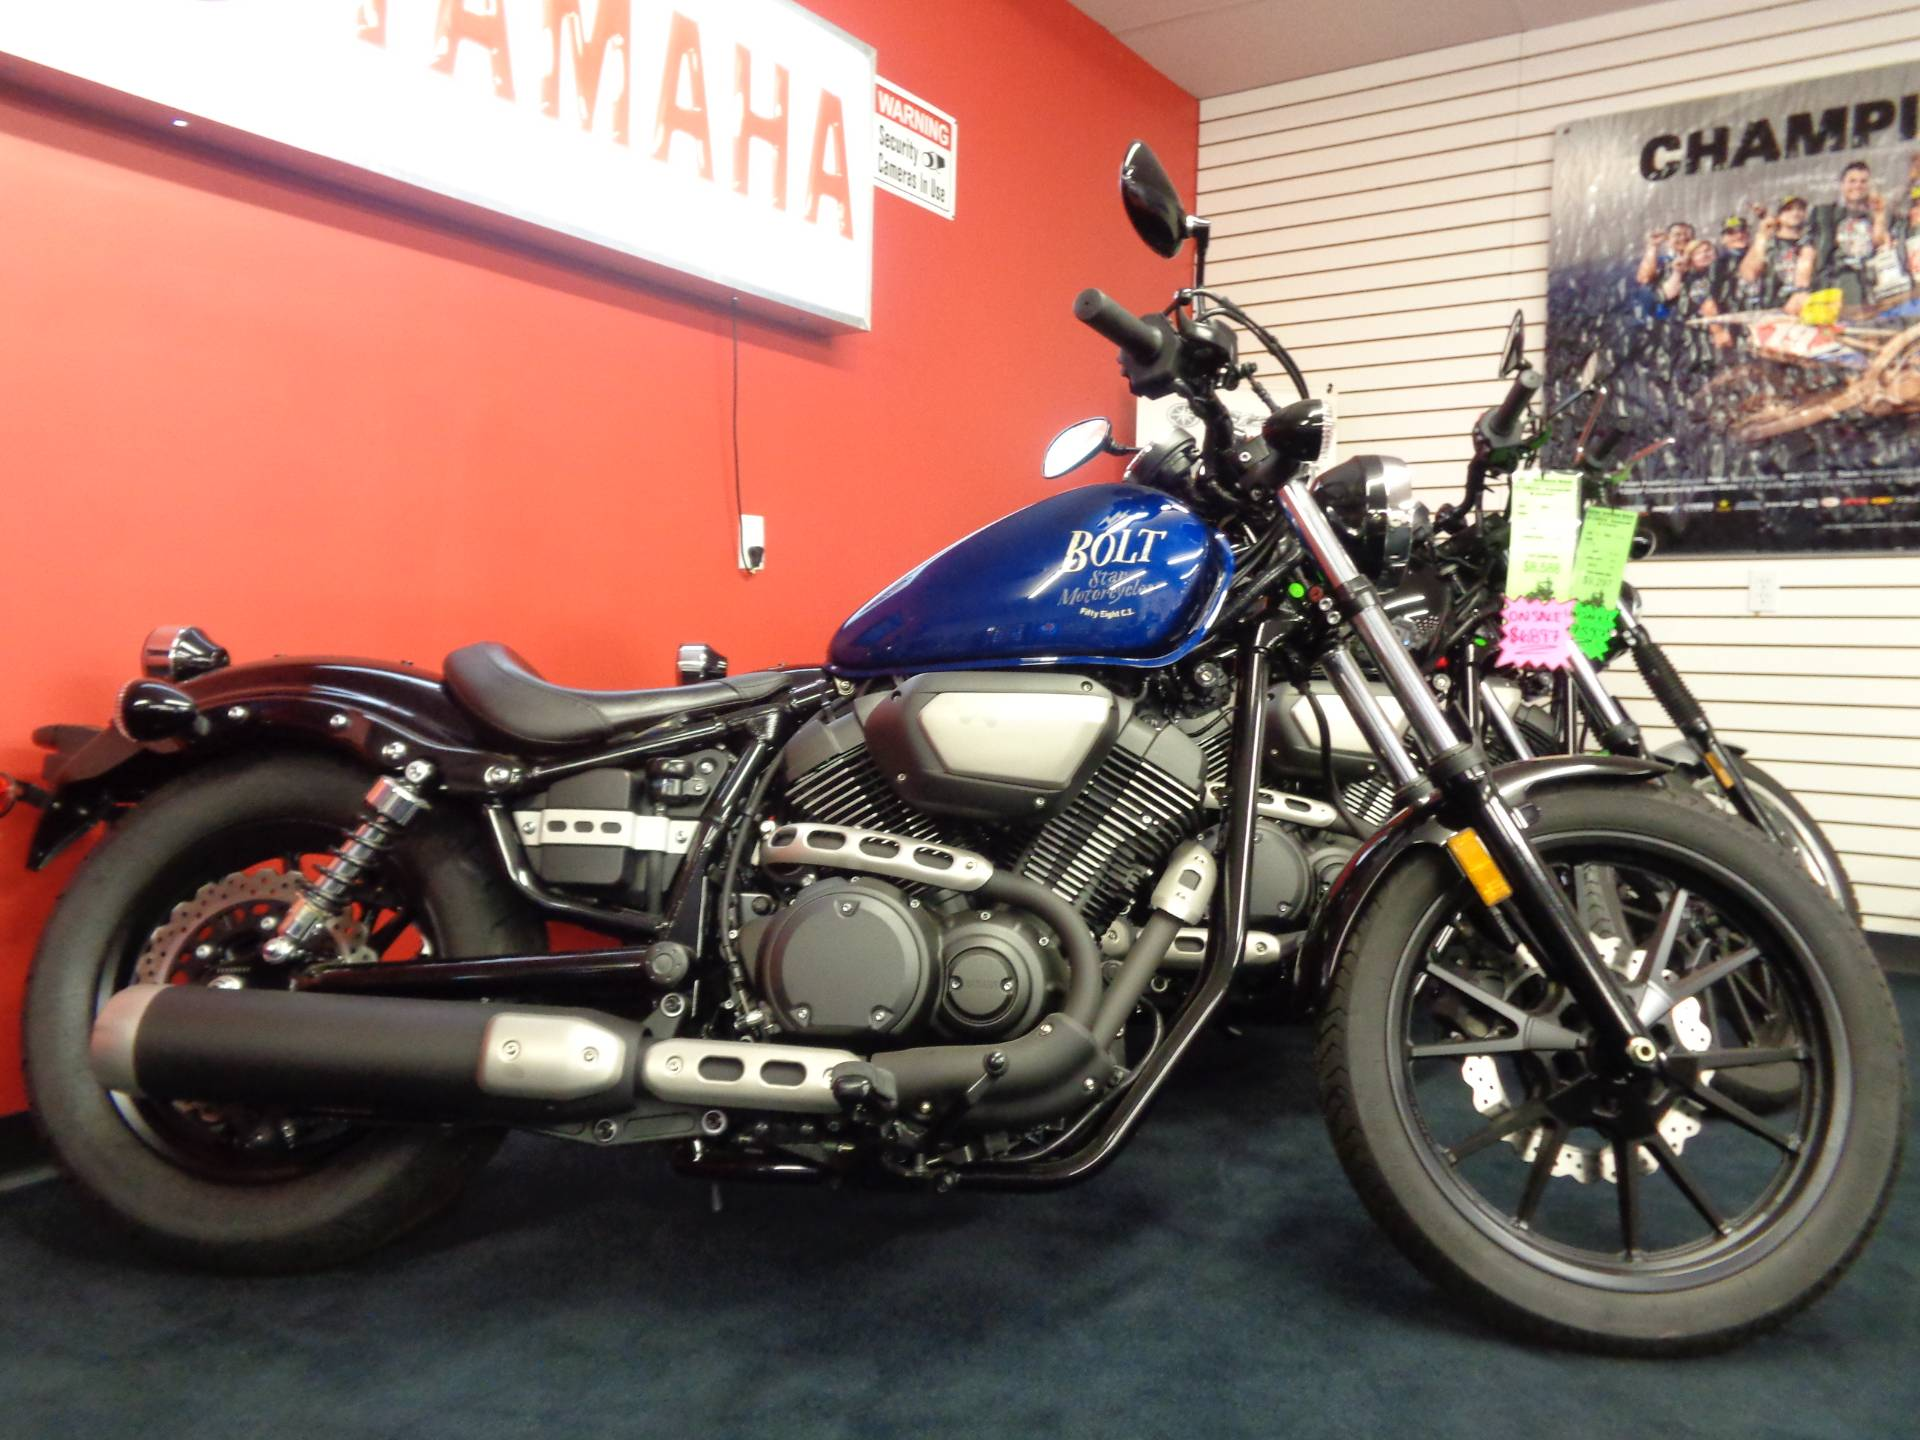 2016 Yamaha Bolt for sale 127610